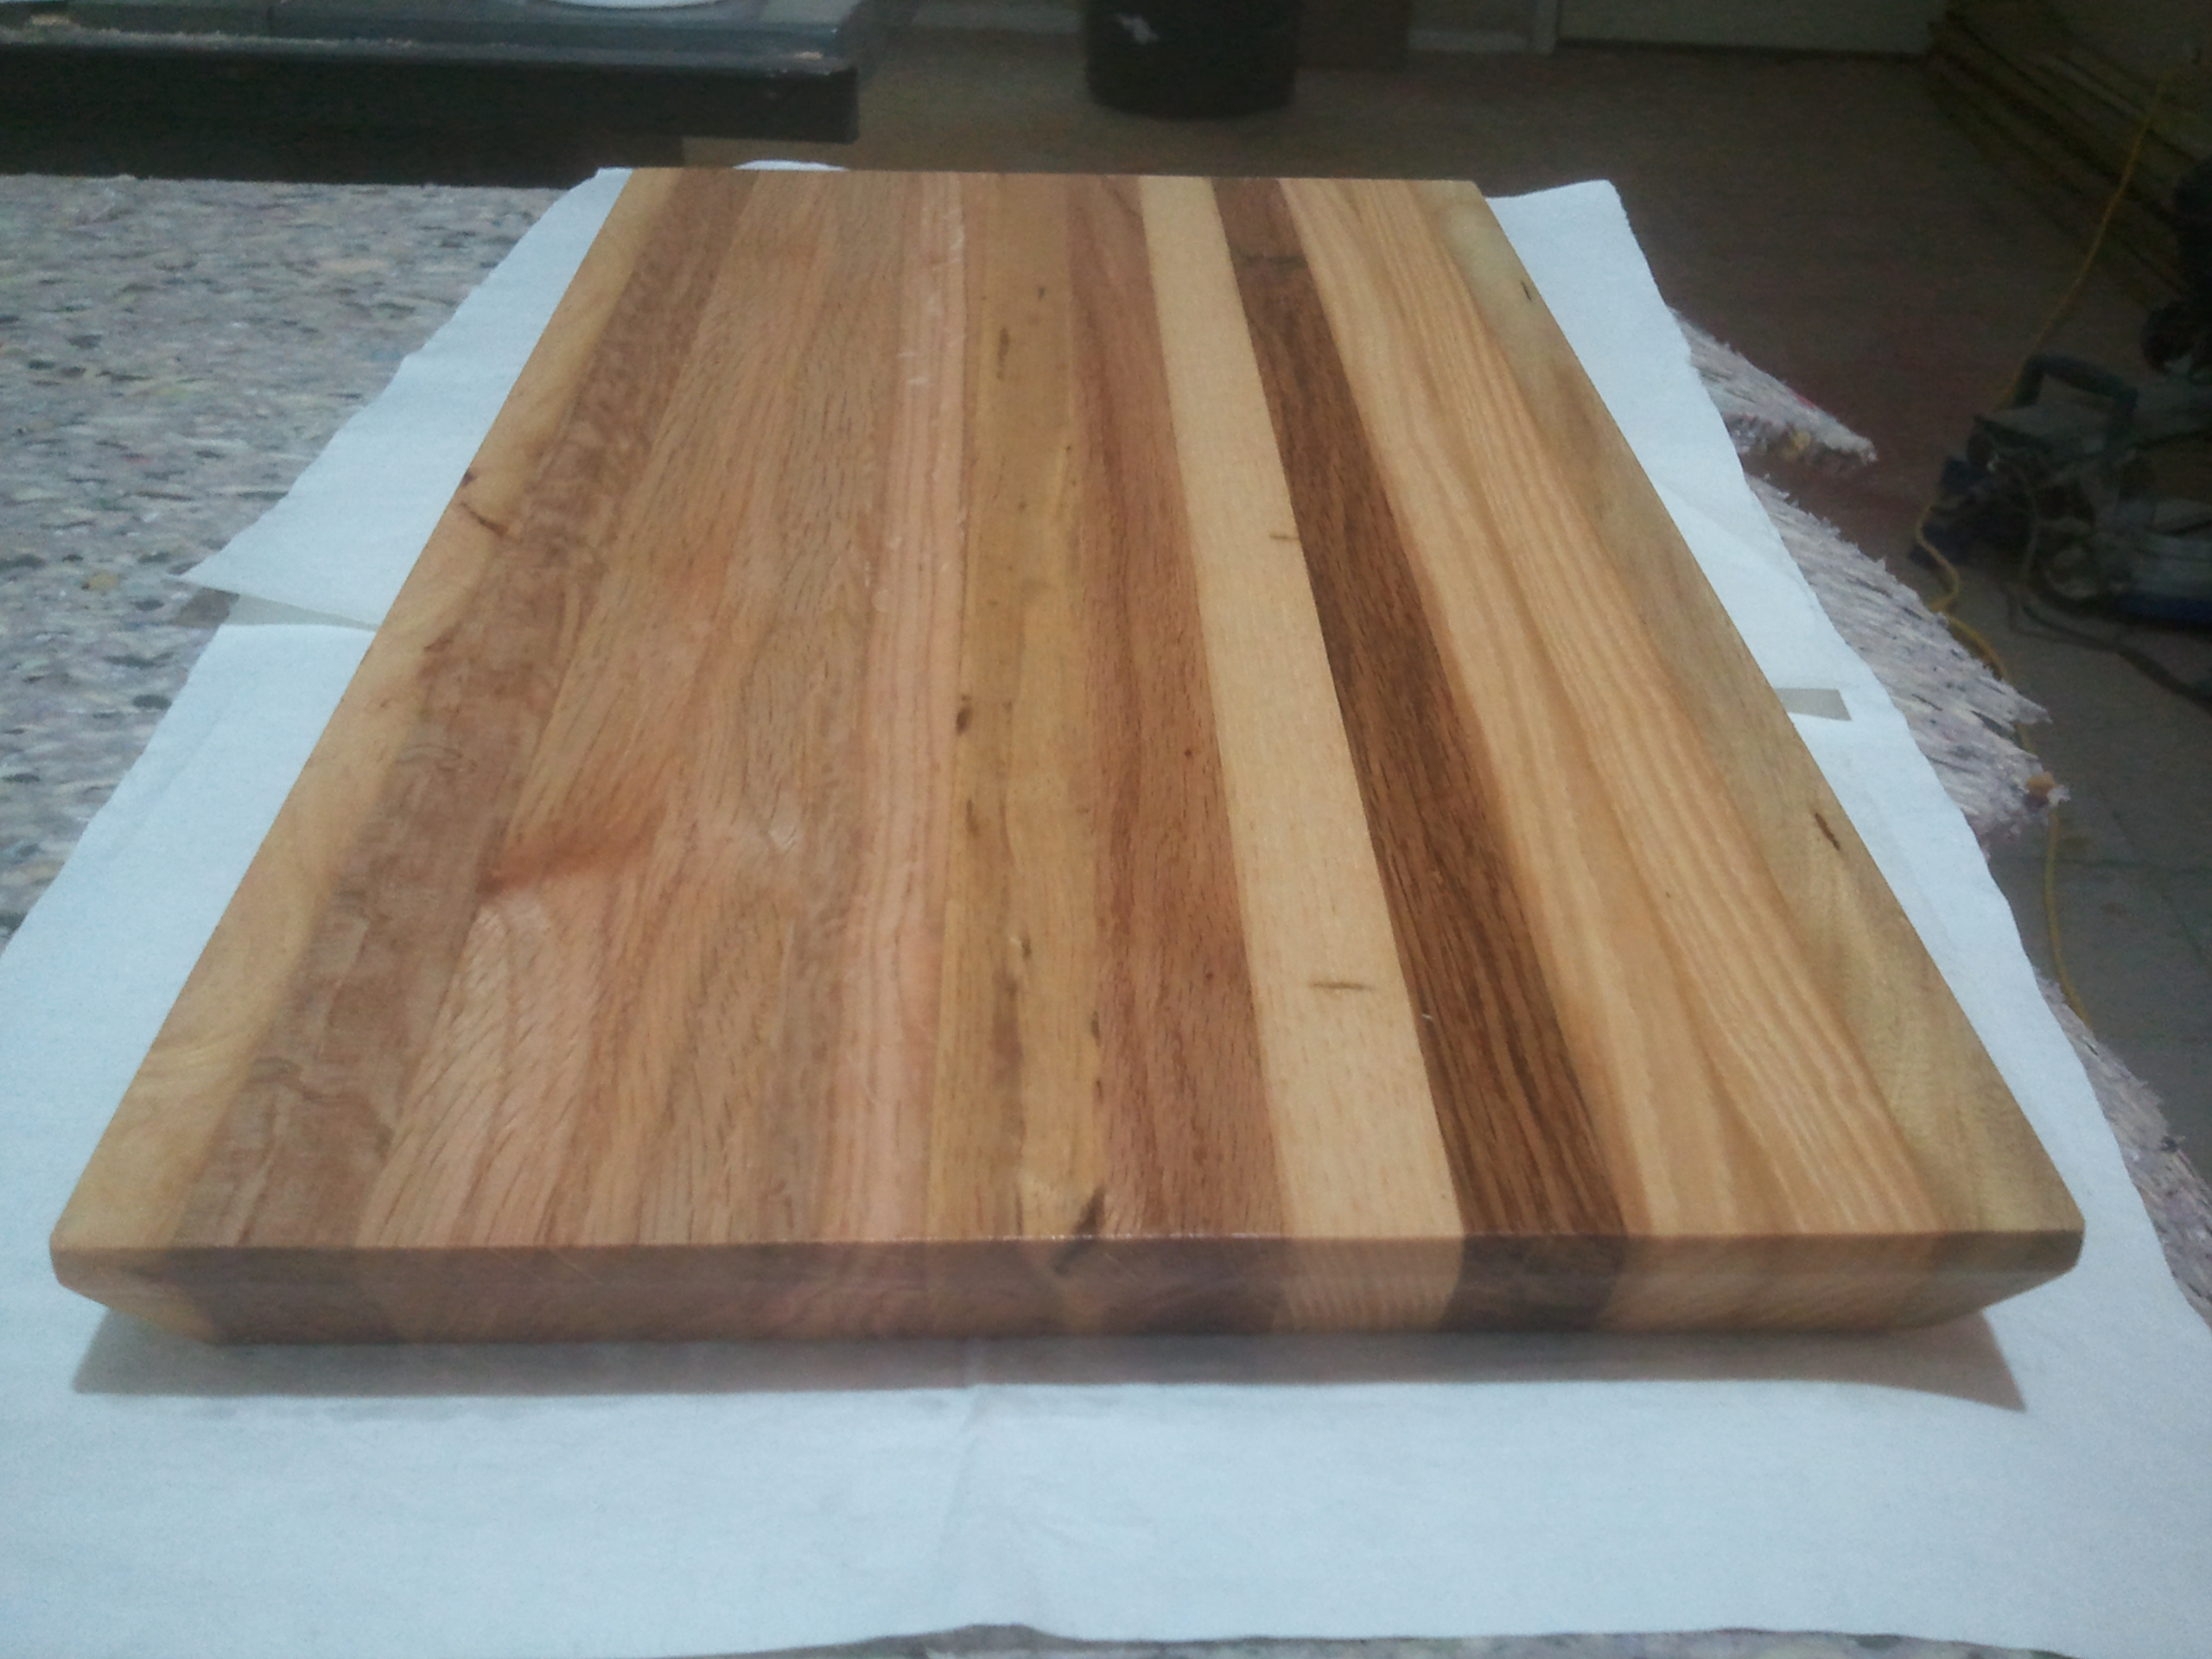 Sofa to cutting board